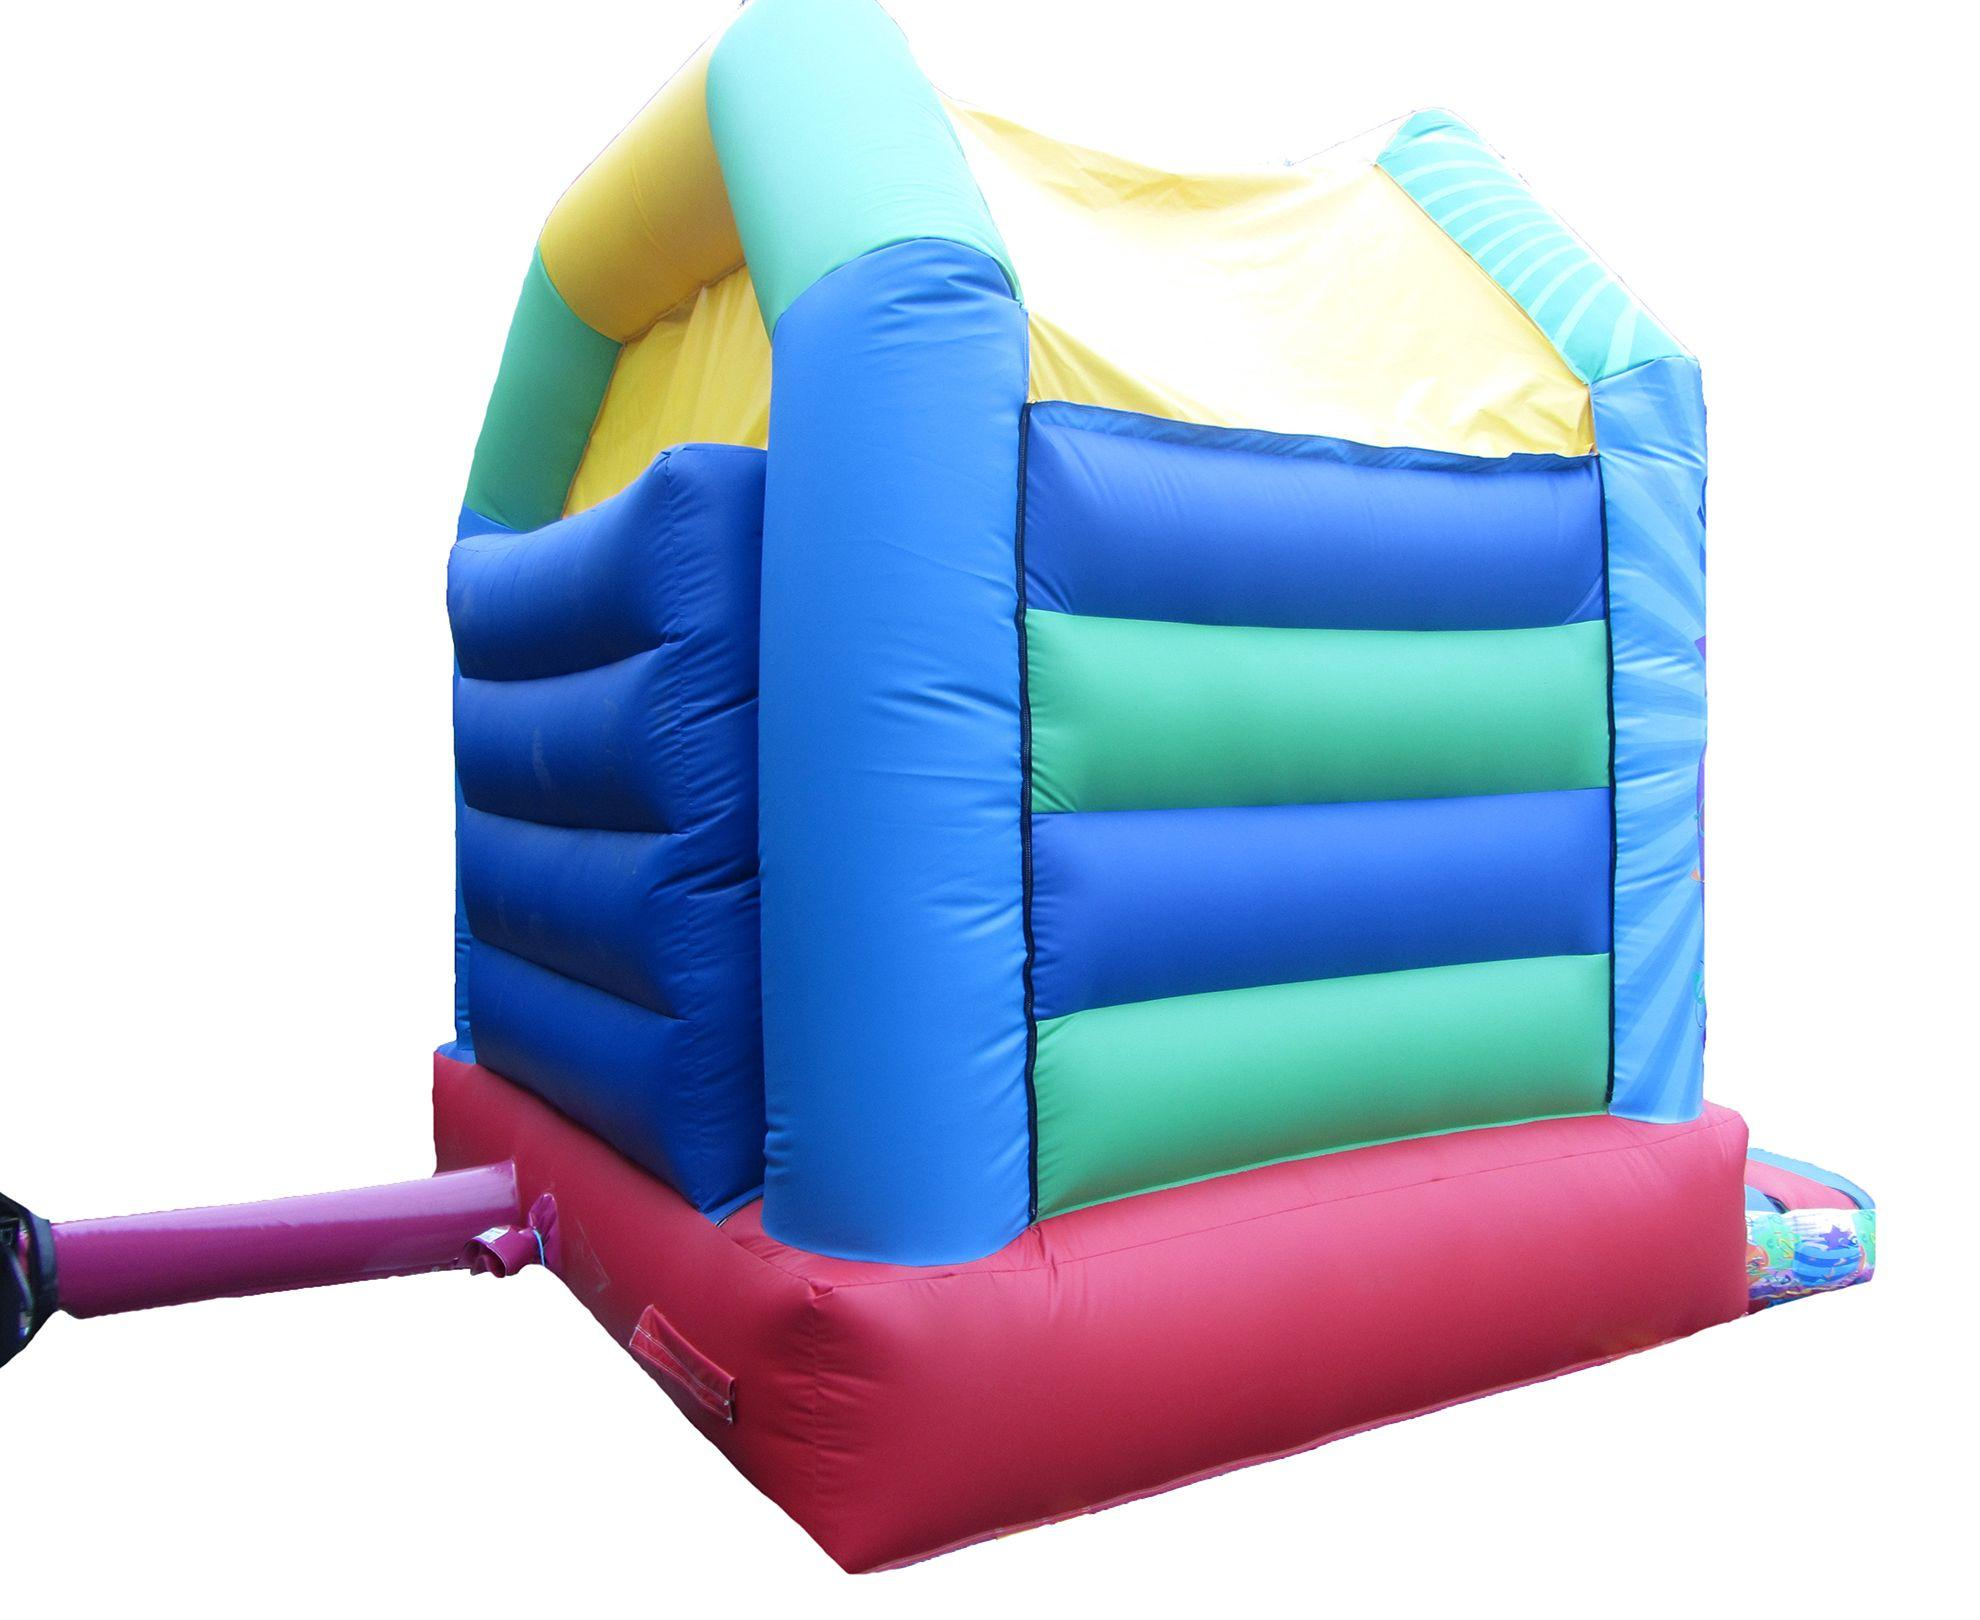 17x15 unisex printed party combi bouncy castle back compressor Copy